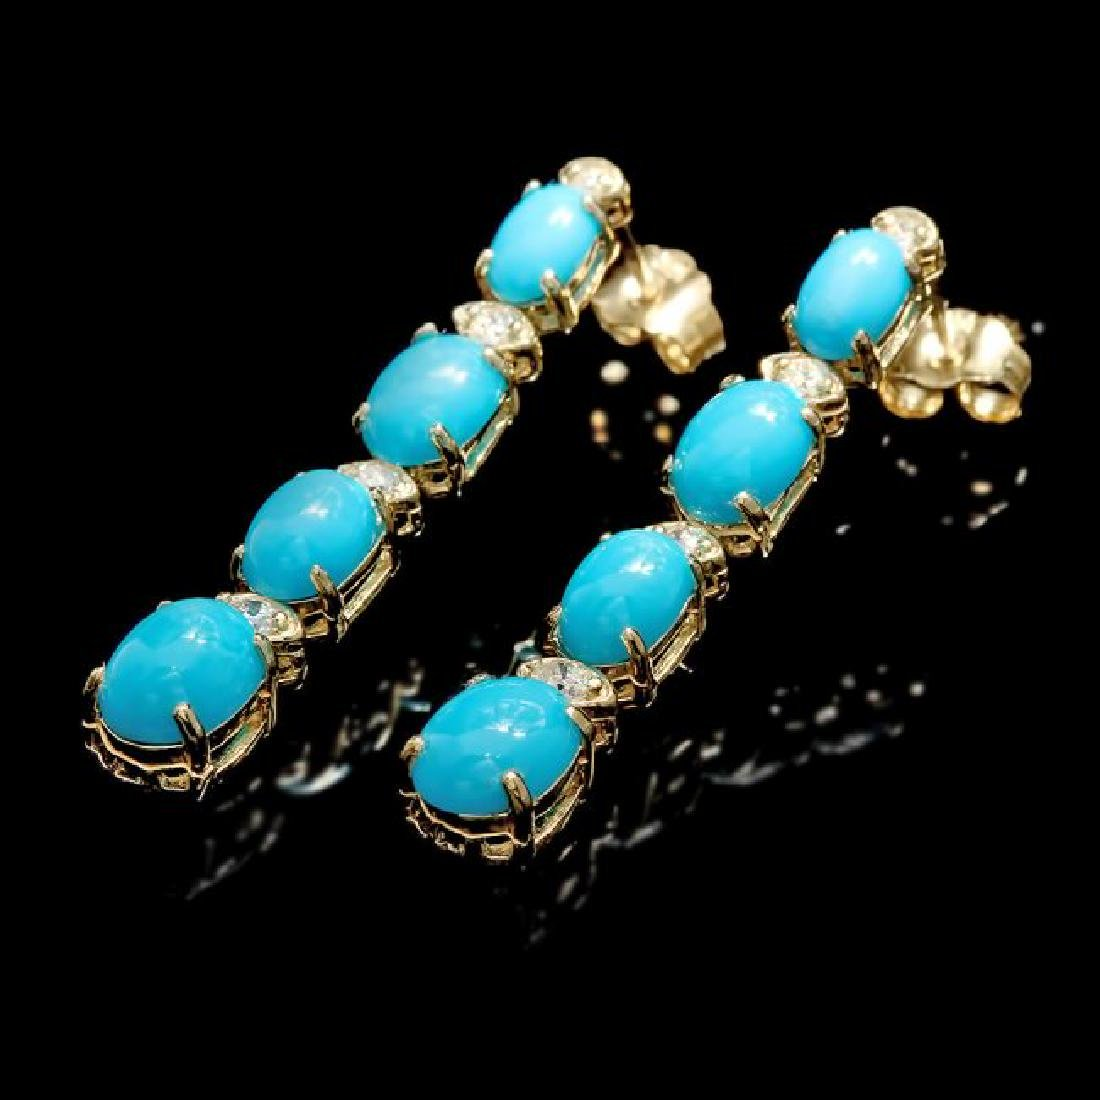 14k Gold 5.50ct Turquoise 0.35ct Diamond Earrings - 3